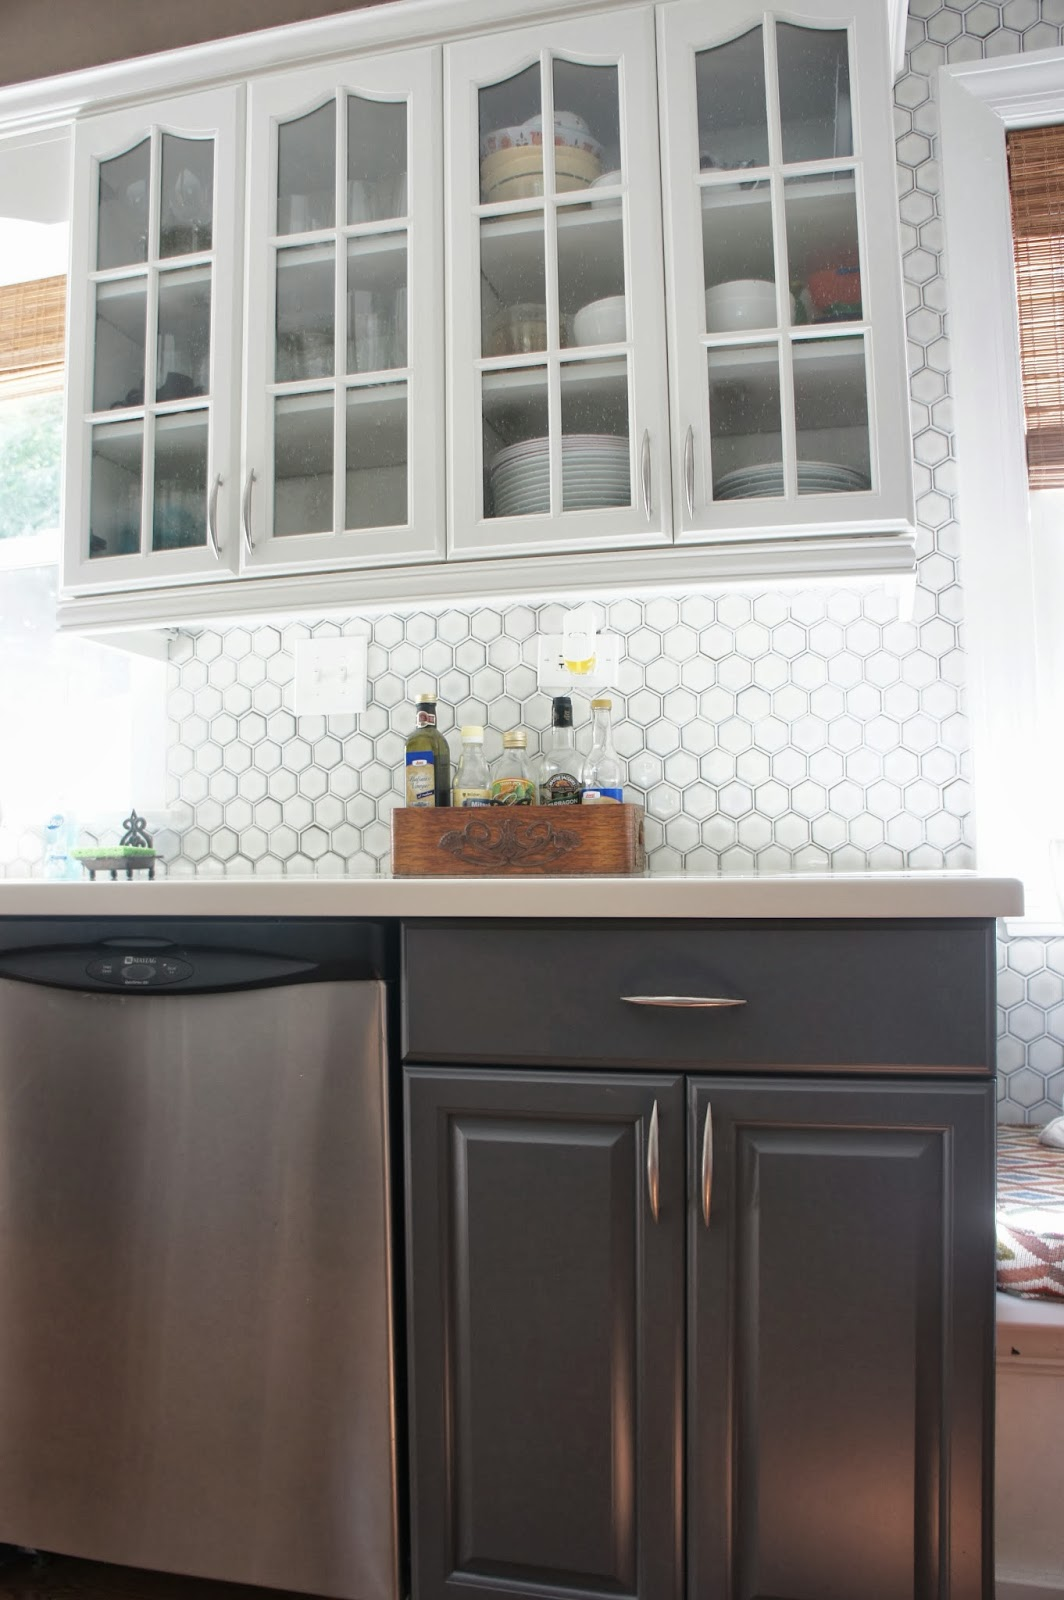 Best Kitchen Gallery: Remodelaholic Gray And White Kitchen Makeover With Hexagon Tile of Gray On Gray Kitchen on rachelxblog.com